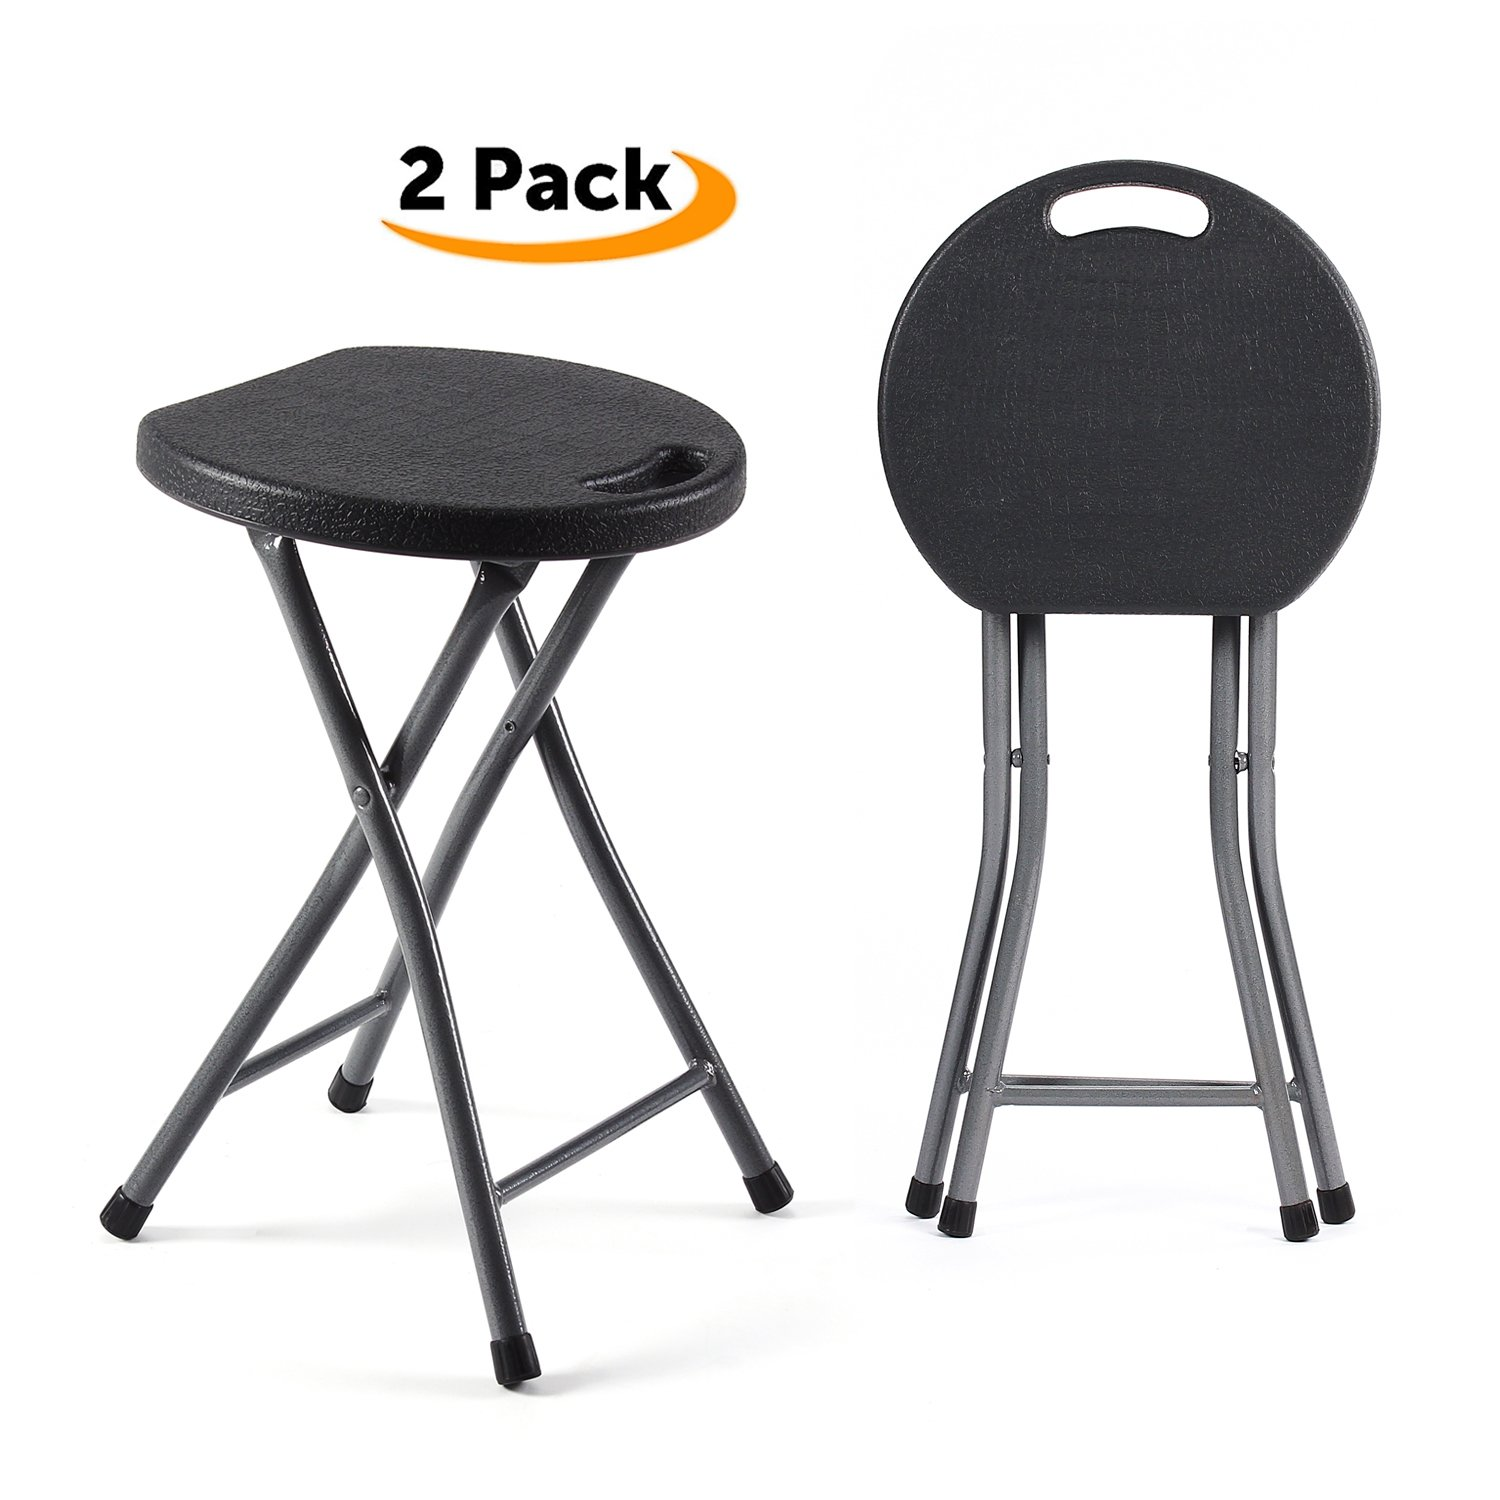 TAVR Folding Stool,Set of Two,Light Weight Metal and Plastic Folding Stool,400lb Capacity,2-Pack Black,CH1001